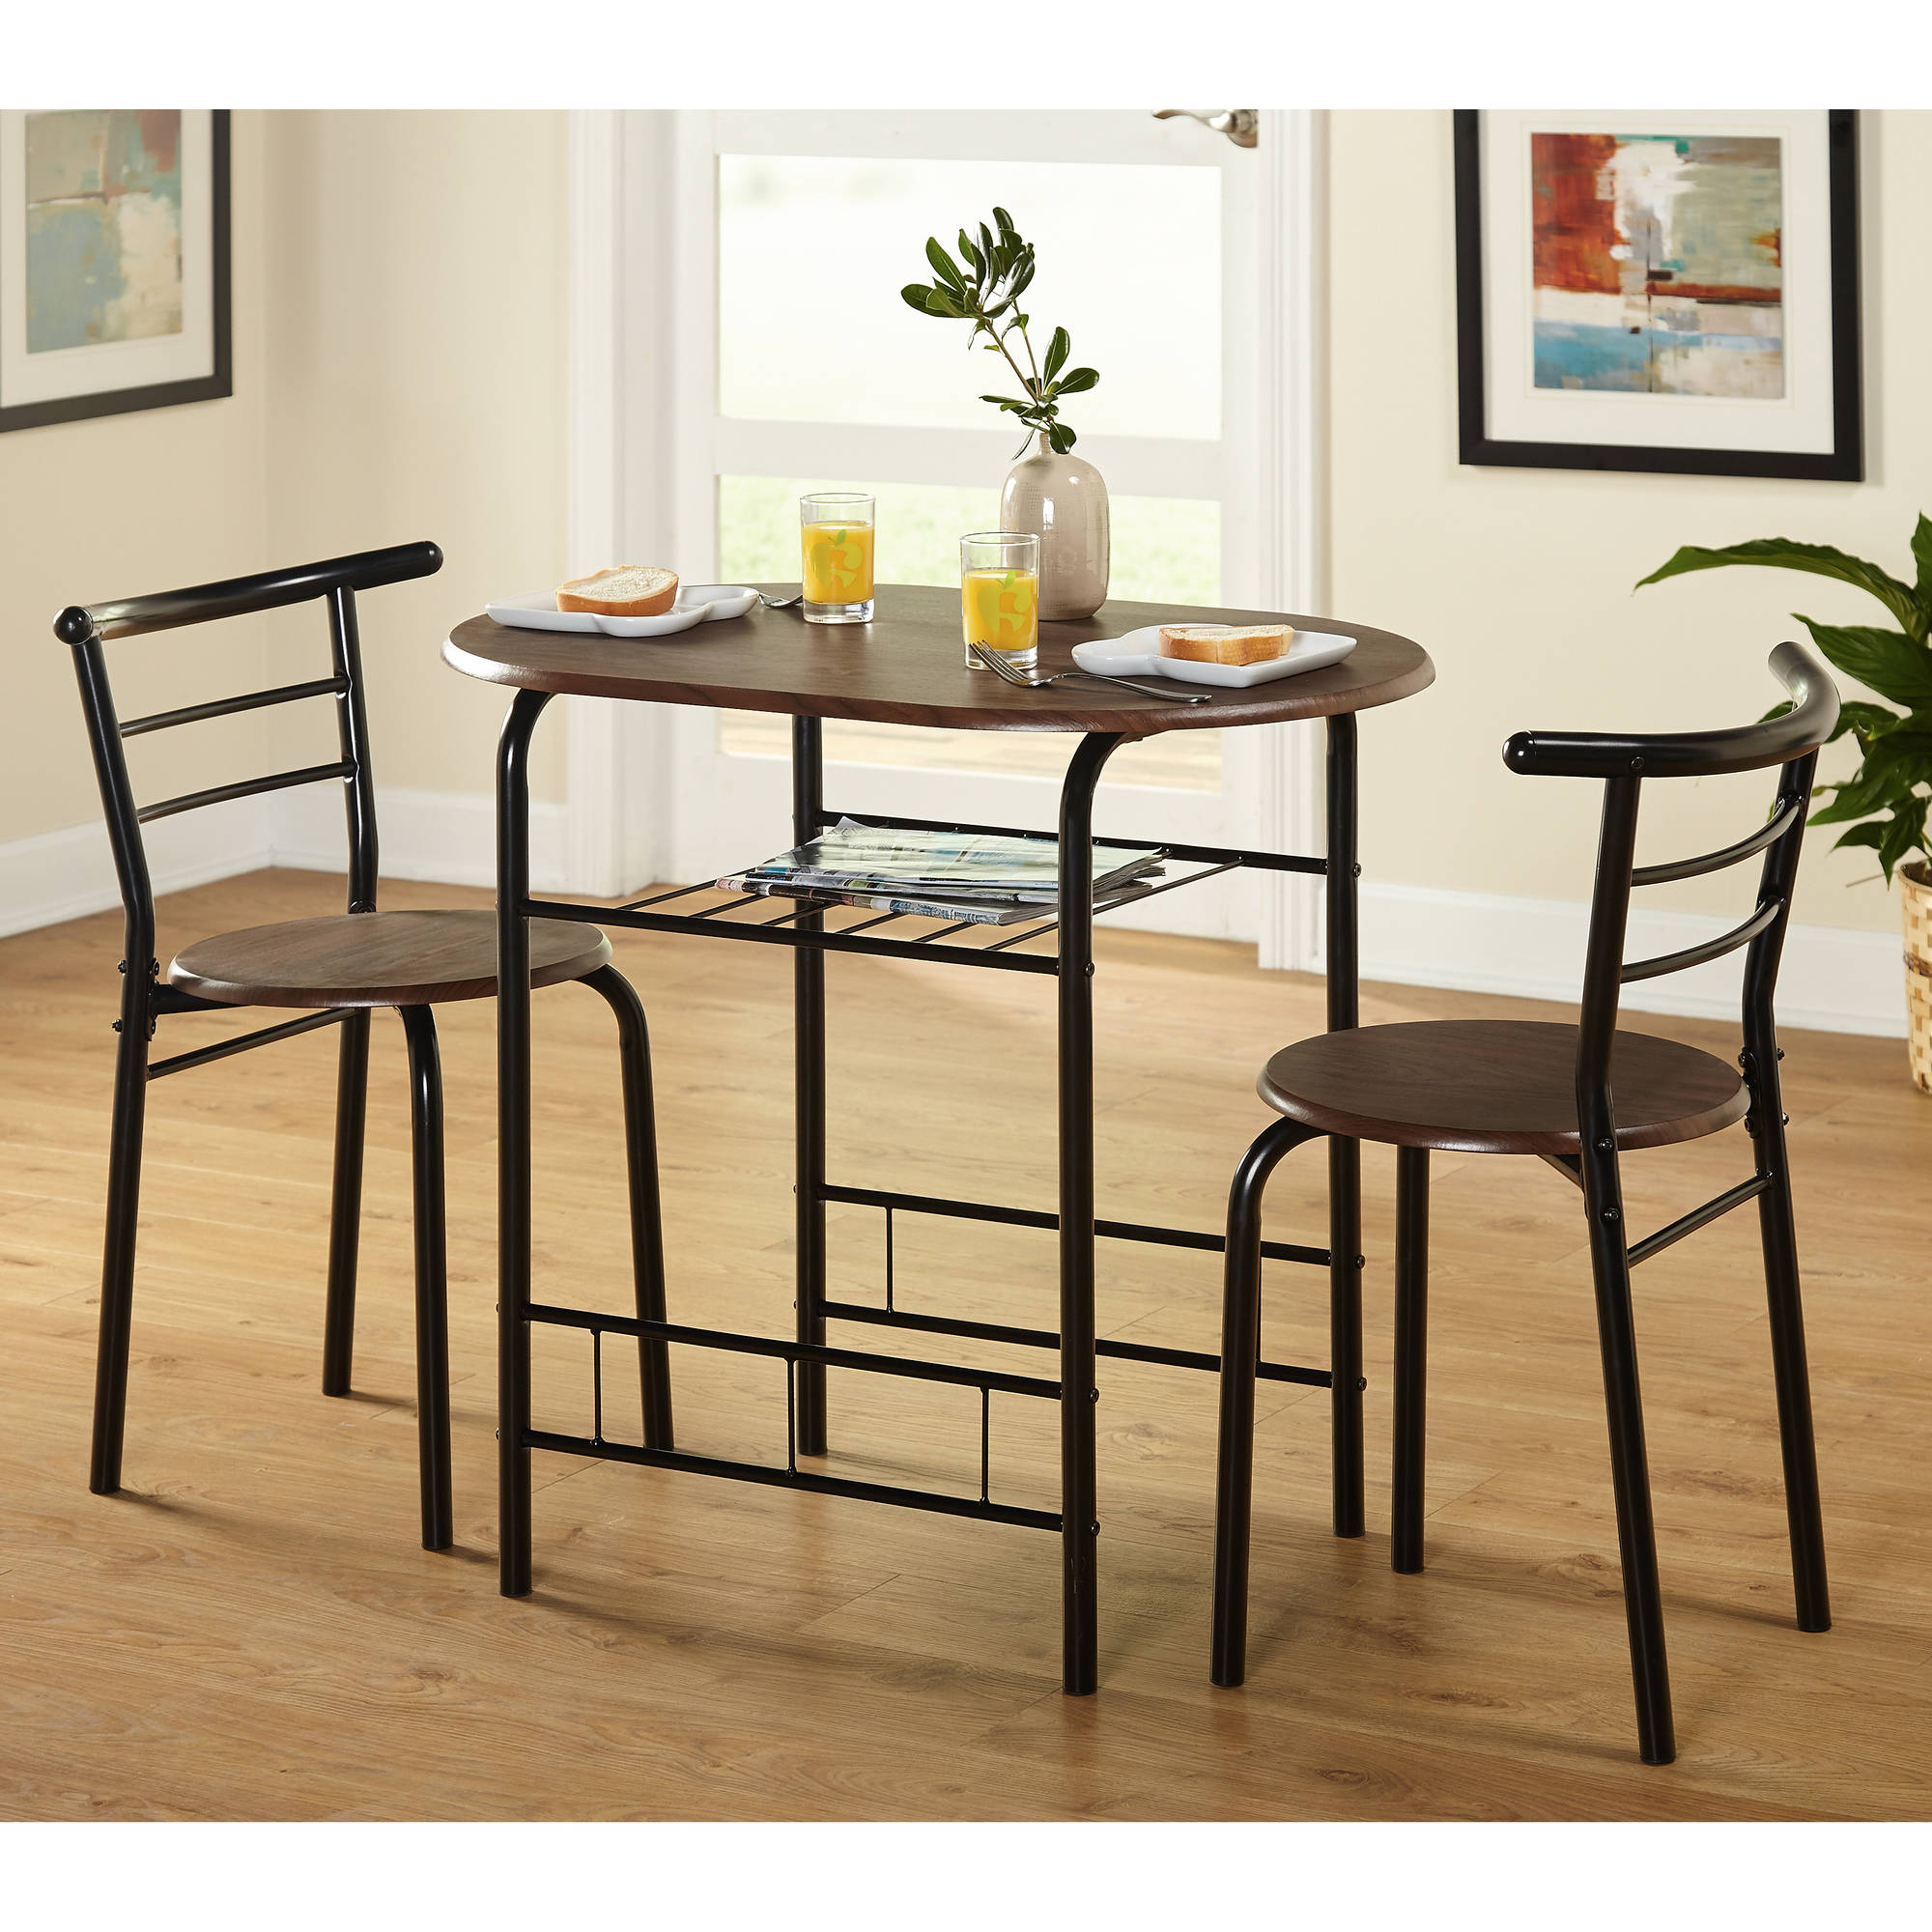 Popular Tms 3 Piece Bistro Dining Set – Walmart Regarding Bate Red Retro 3 Piece Dining Sets (View 3 of 25)